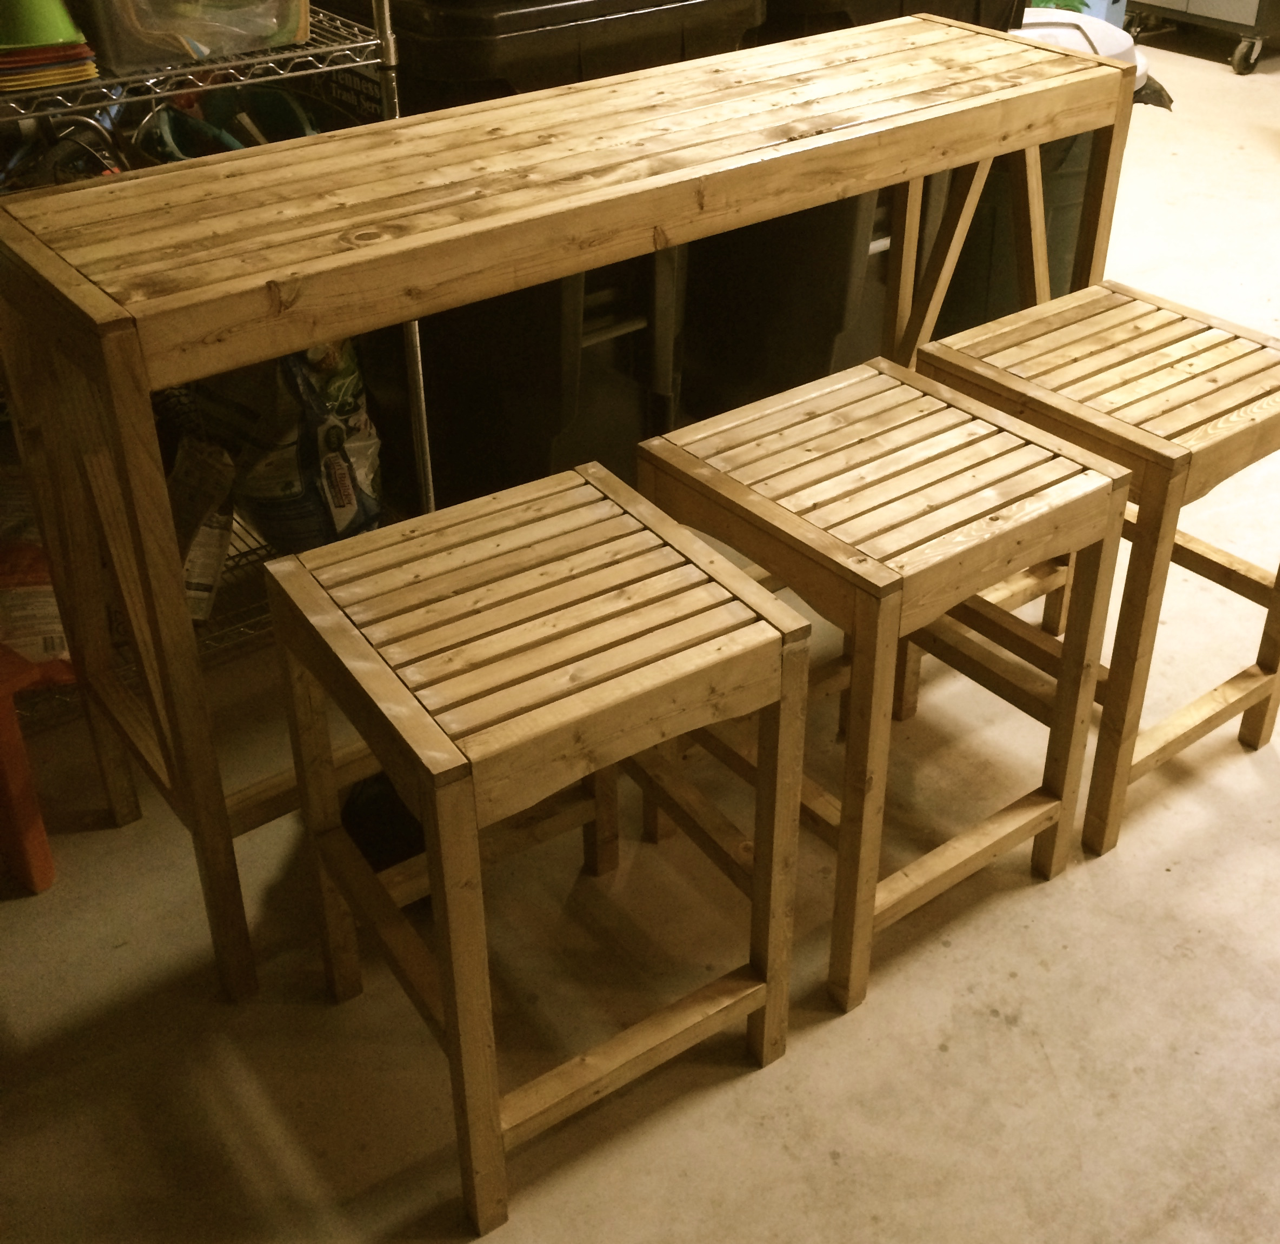 ana white build a sutton custom outdoor bar stools free and easy diy project